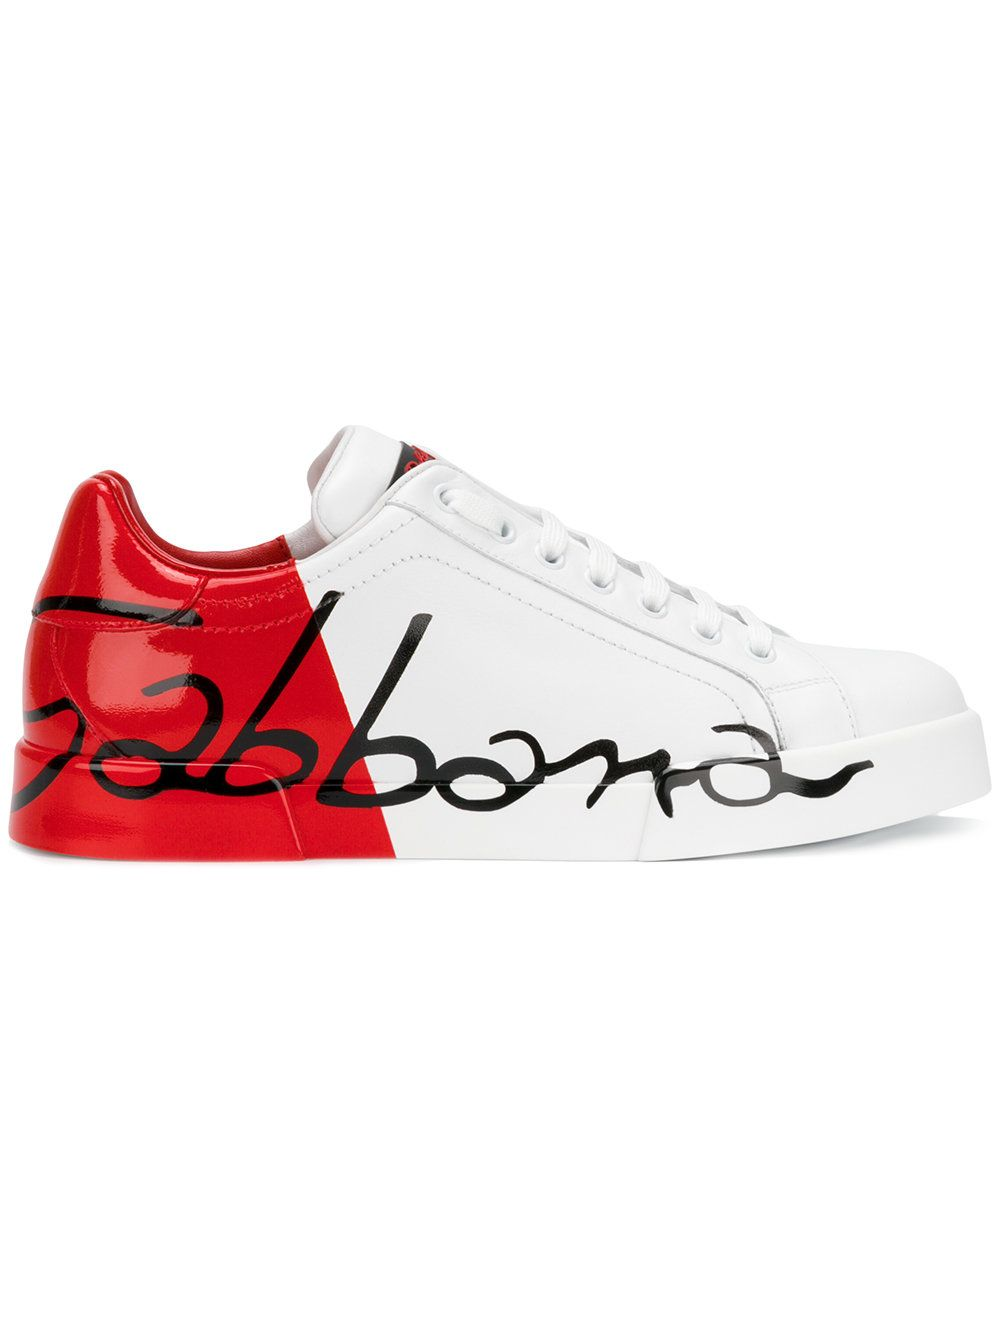 0a83a9b04c3 Dolce & Gabbana scrawled logo sneakers | MEN'S FOOTWEAR | Shoes with ...